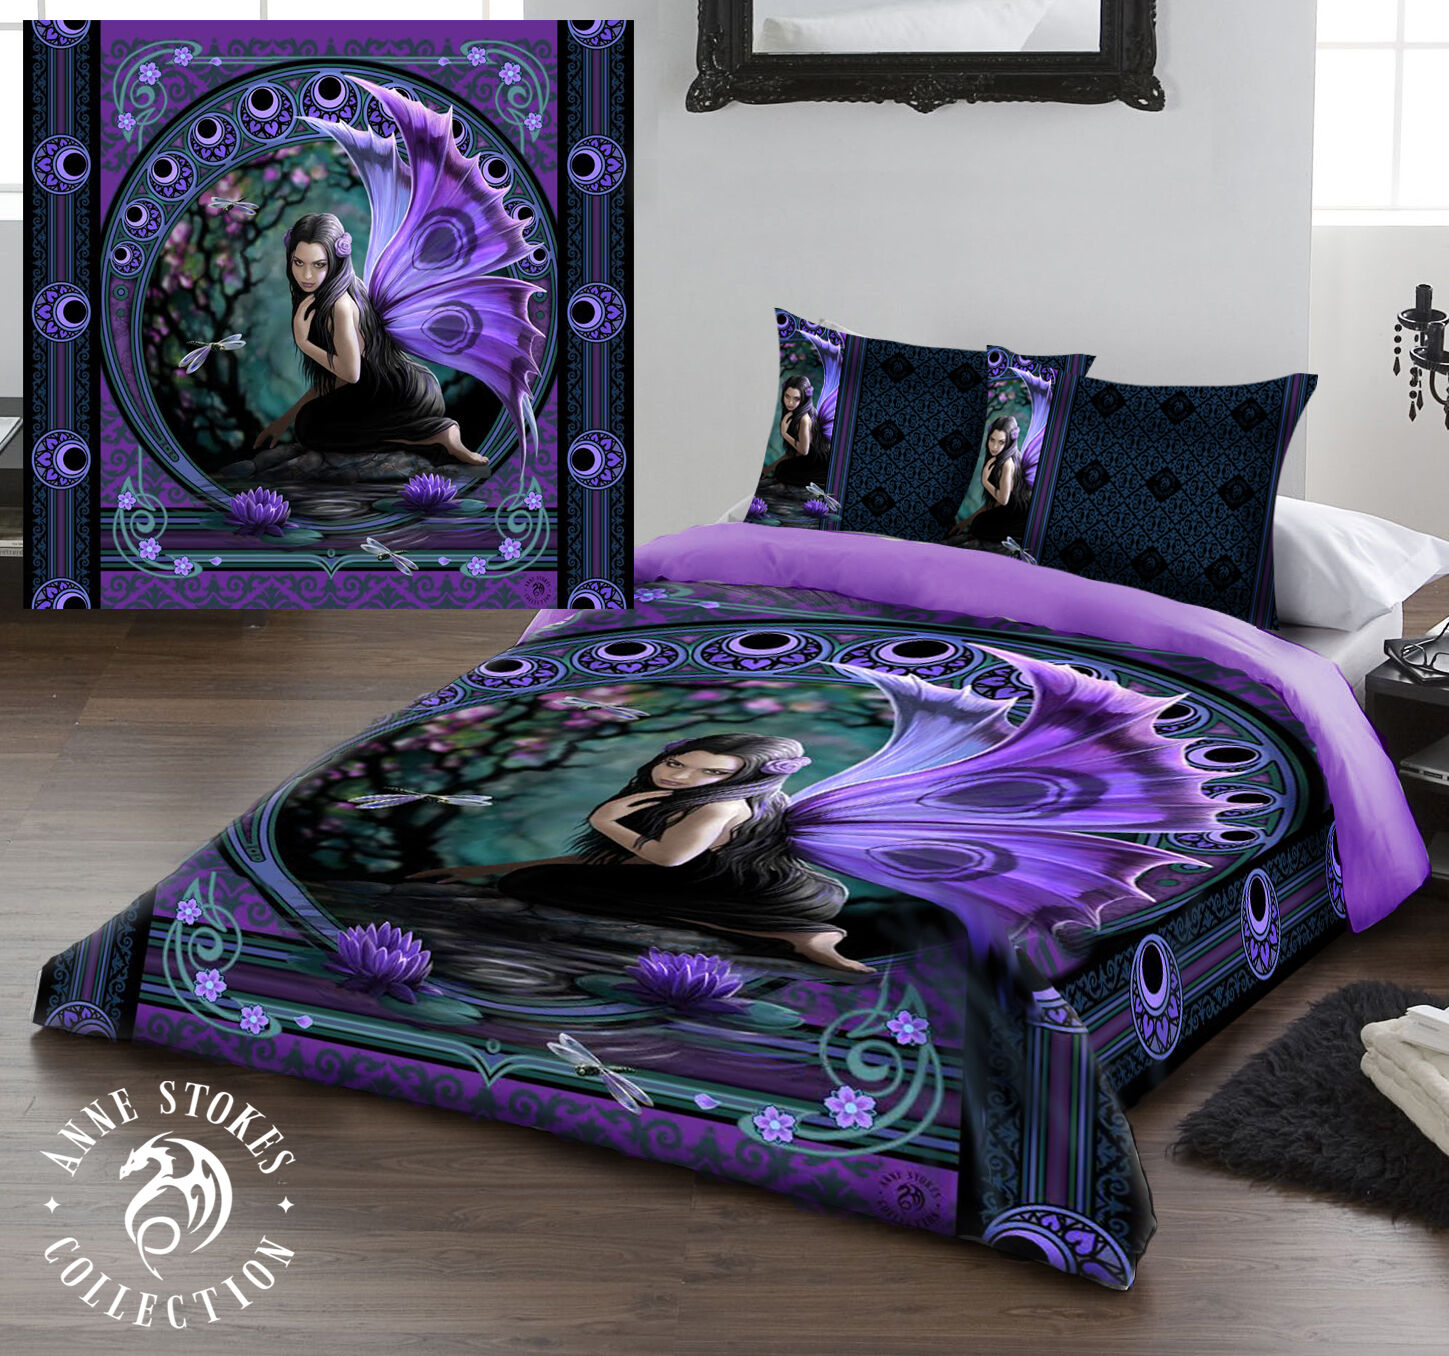 NAIAD - Duvet Cover Set for UK KING   US QUEENGröße BED Artwork by ANNE STOKES